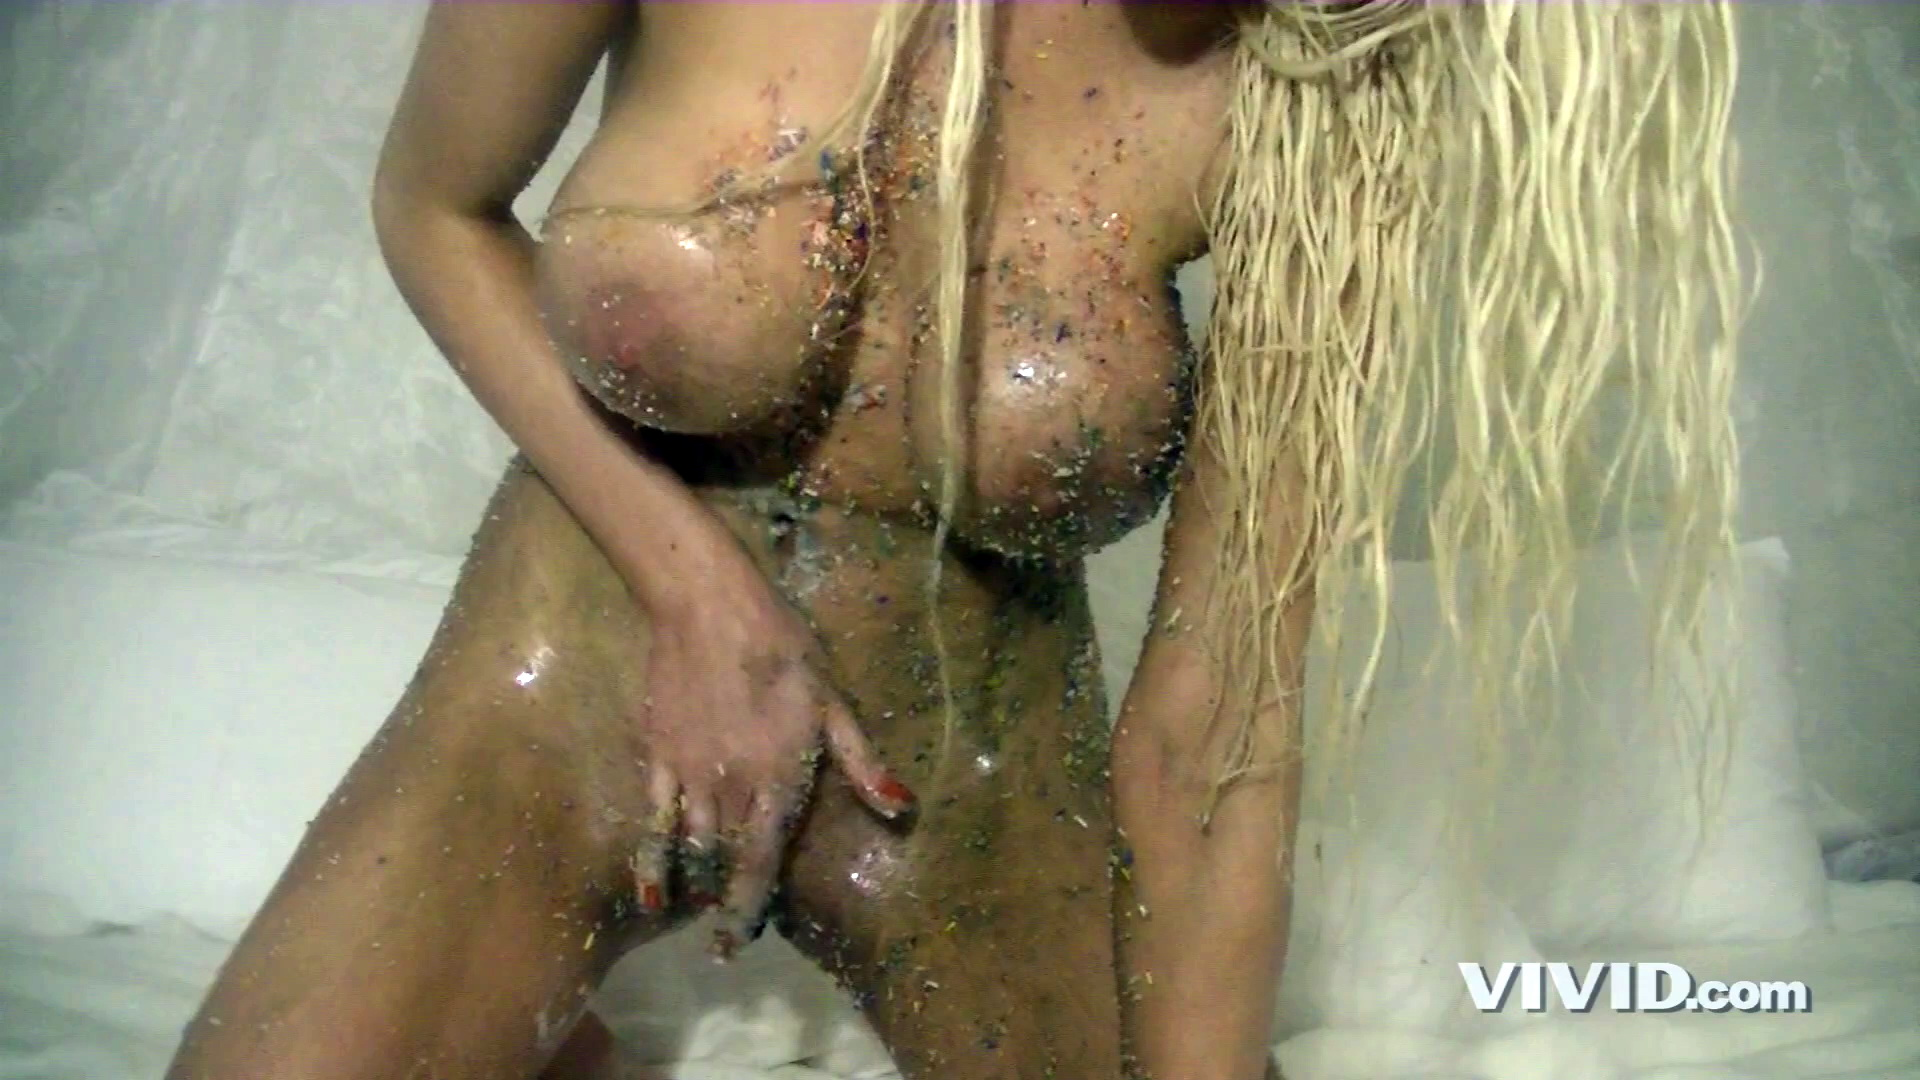 Stodden courtney nude pussy piece The